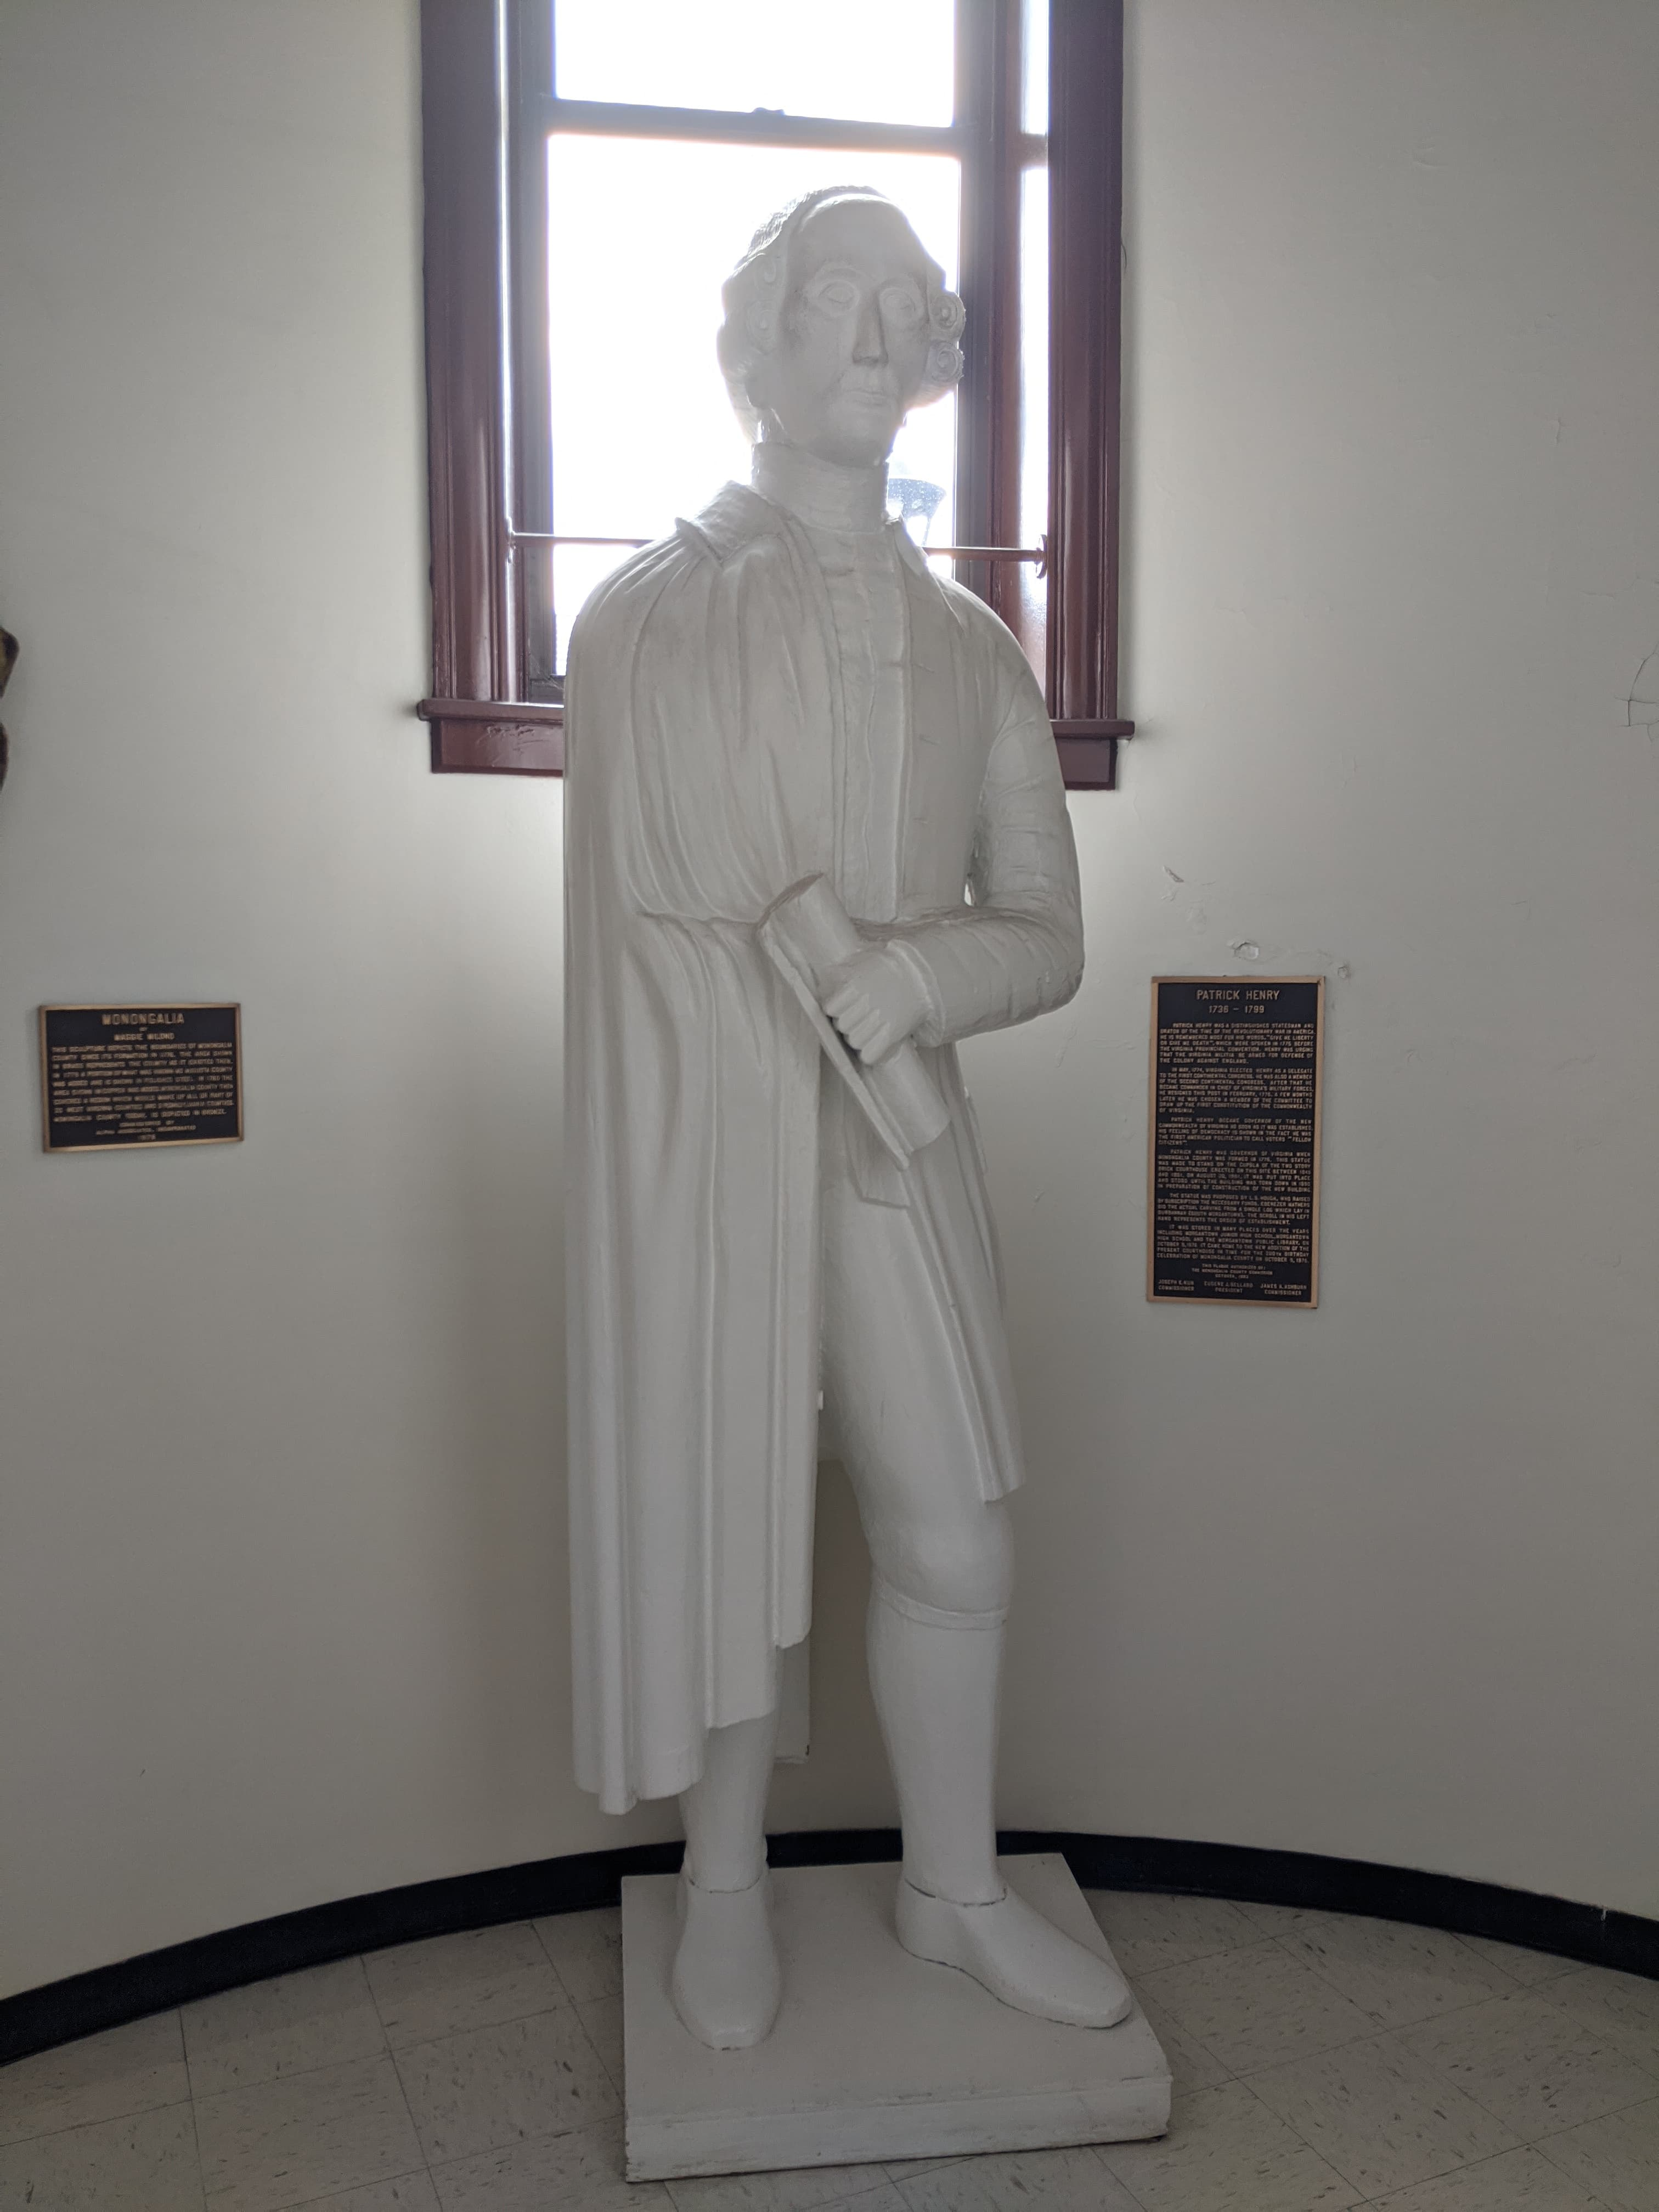 The statue of Patrick Henry in its present location